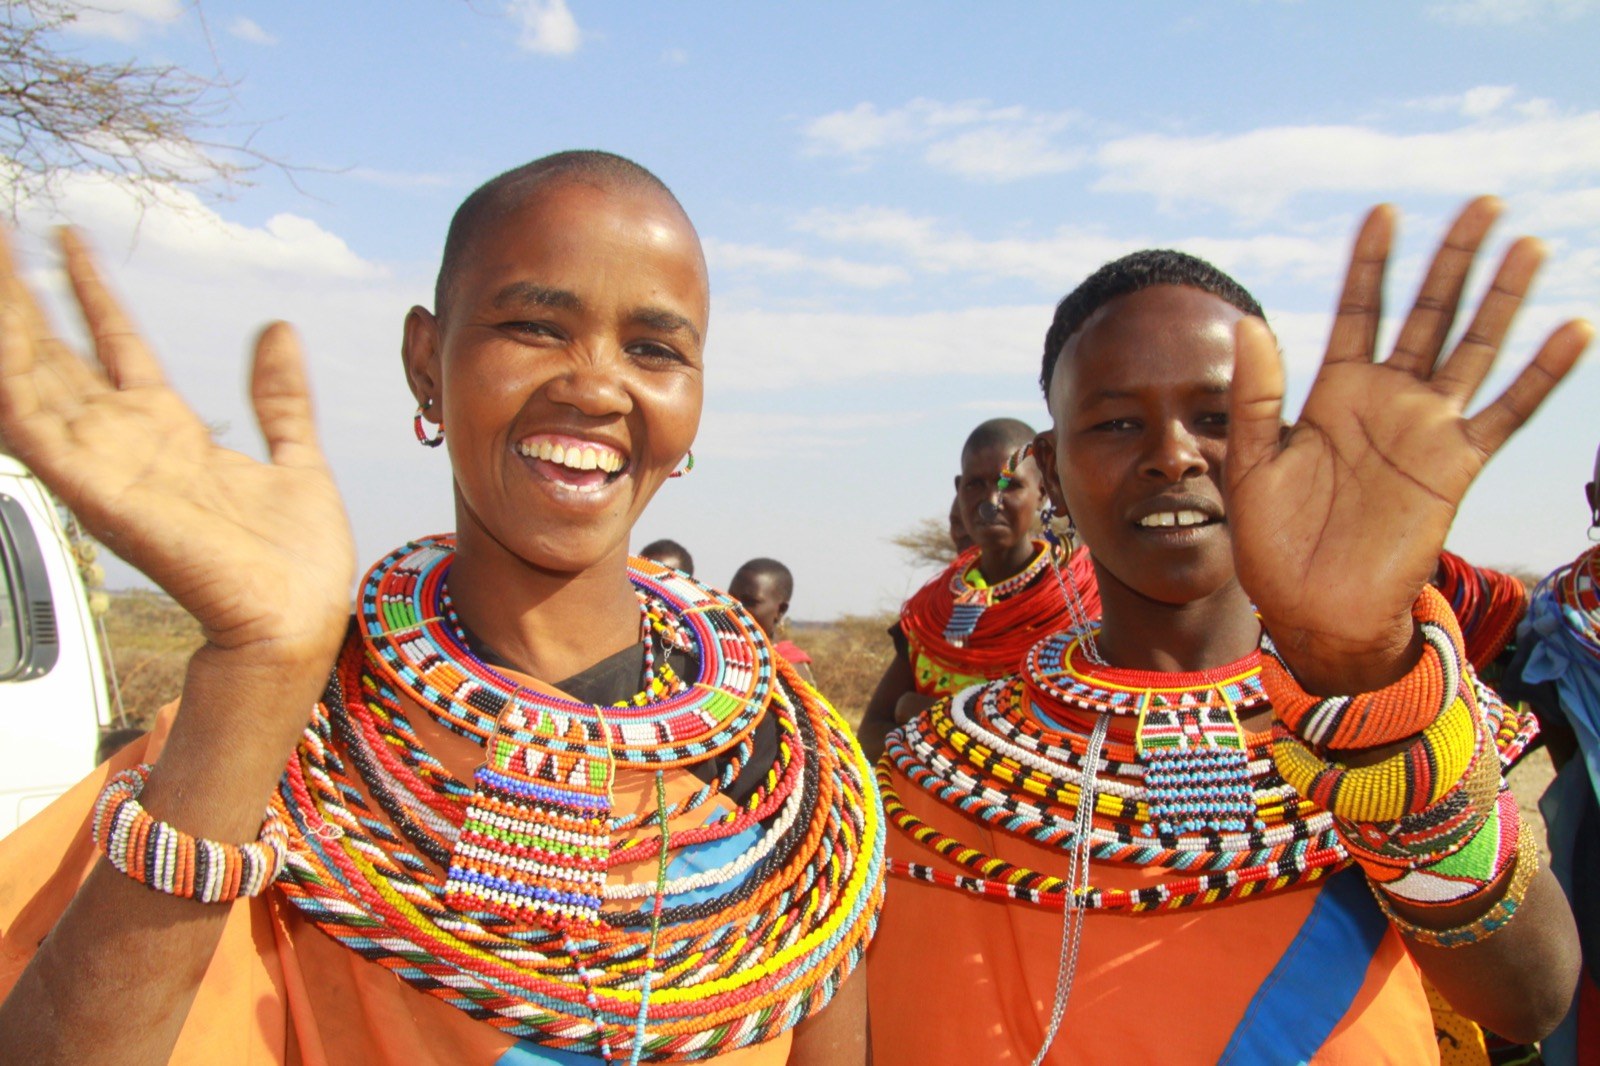 Two Masaai women wave to the camera showing us their colorful beaded necklaces and bracelets.